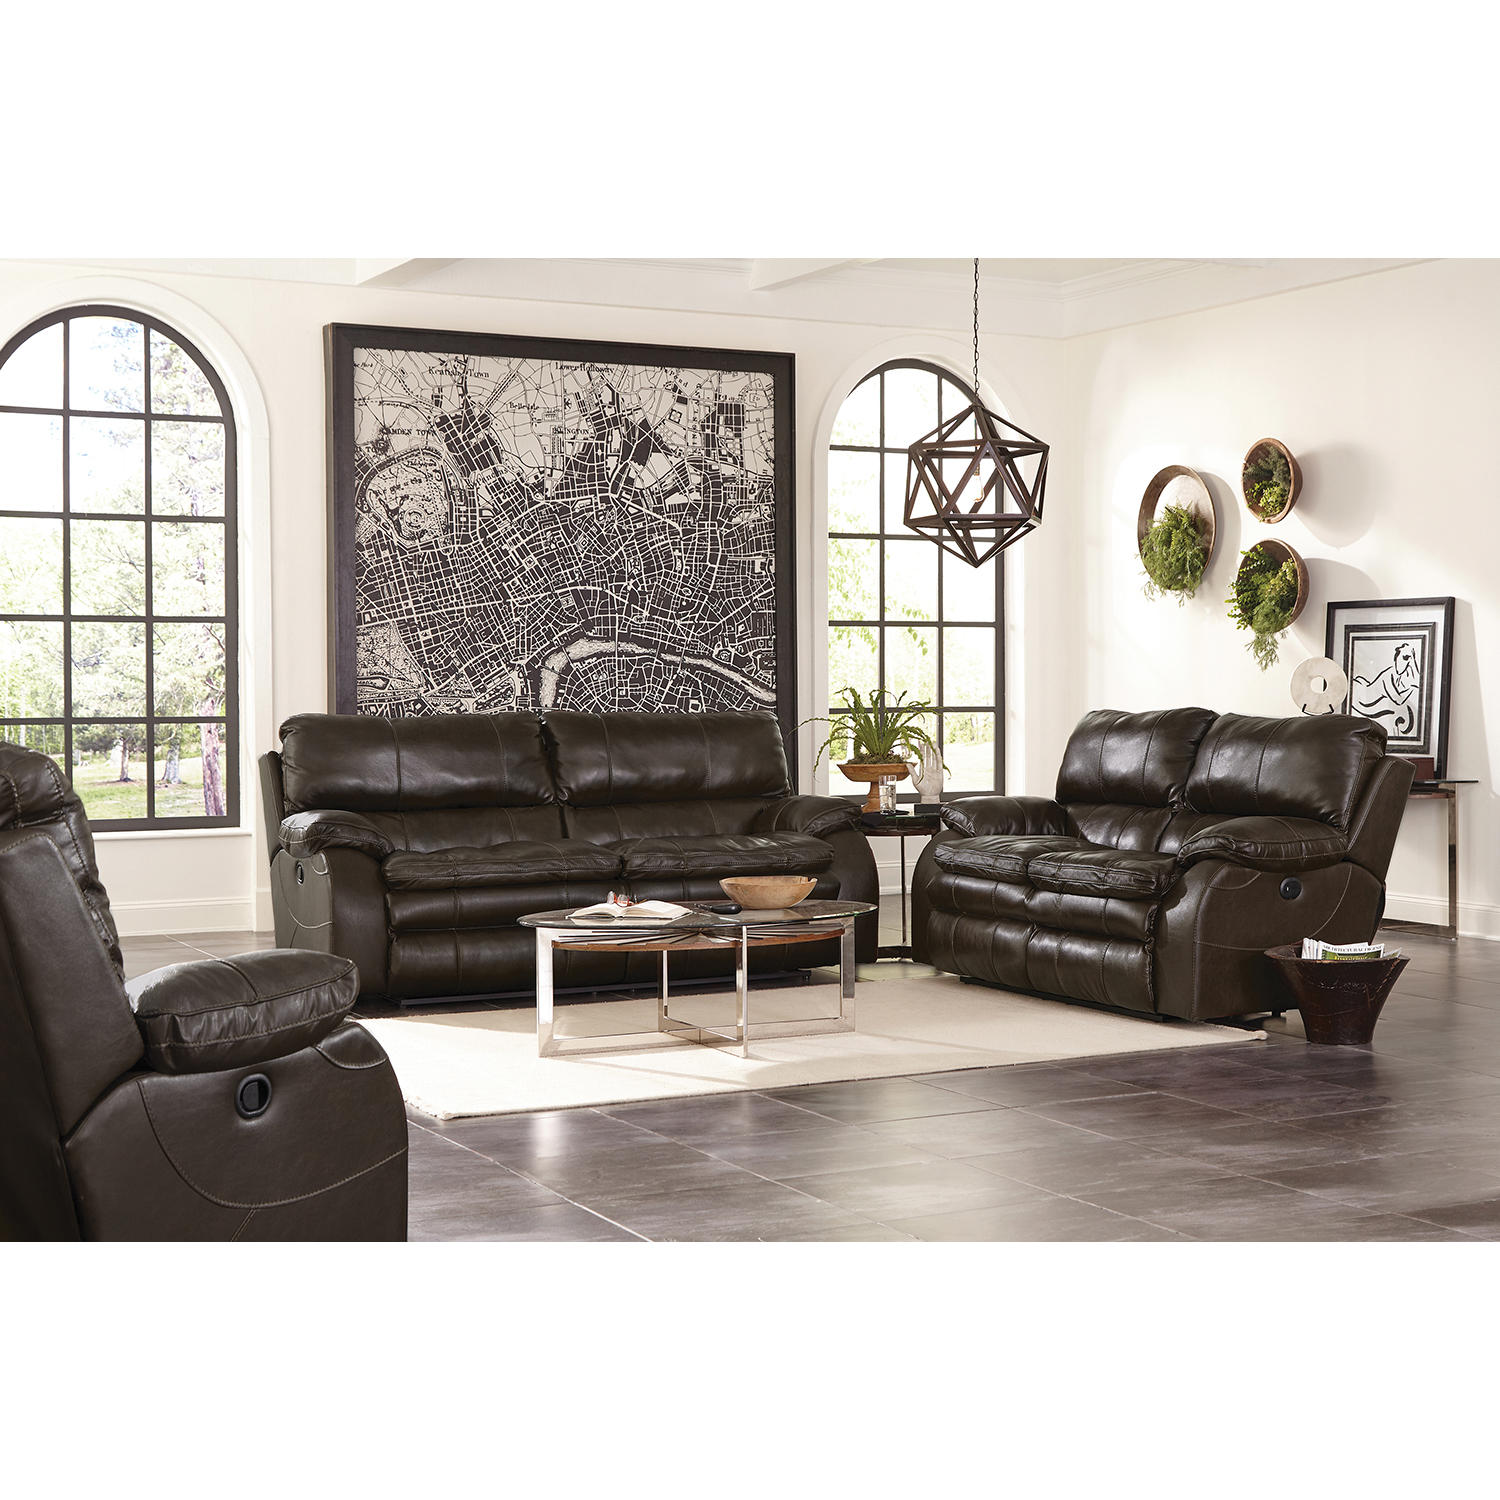 Jackson Furniture Kensington Top-Grain Leather Lay Flat Reclining Set